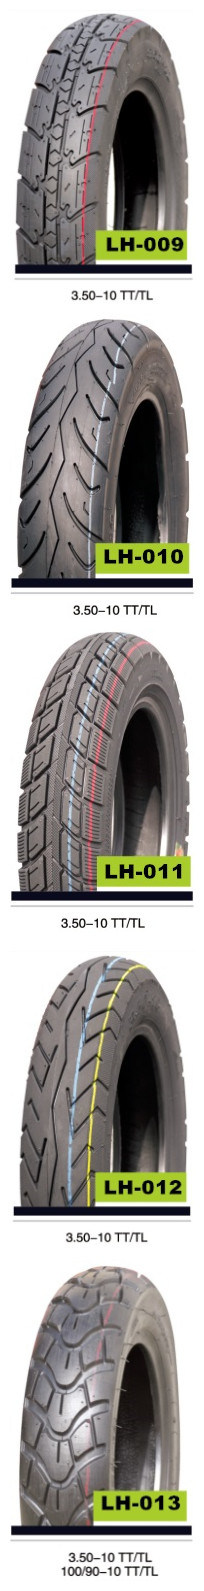 DOT Aproved Scooter Tubeless Motorcycle Tire for America Market (3.50-10)